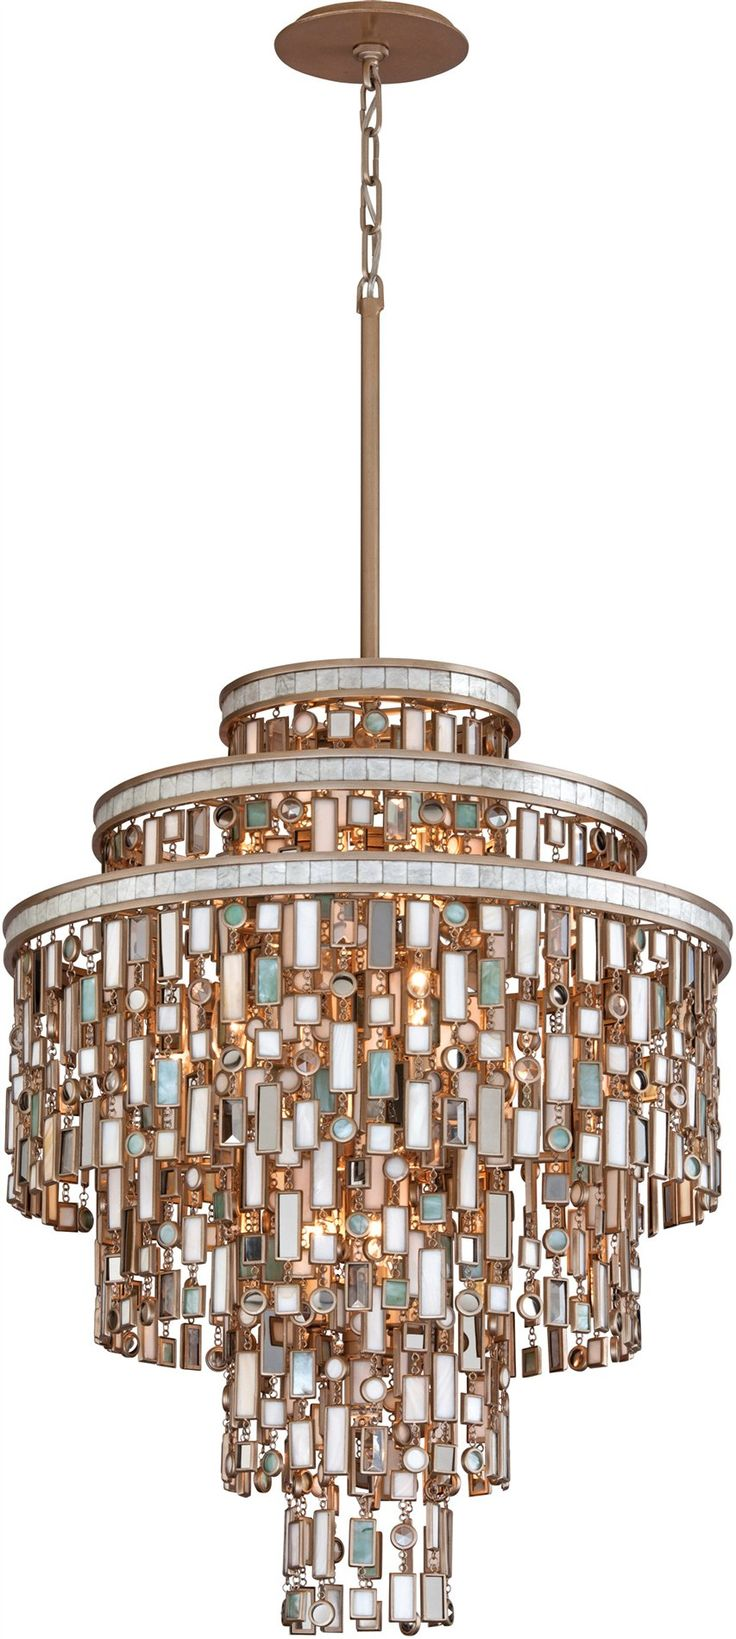 Corbett Lighting Dolcetti Transitional Crystal Pendant Light